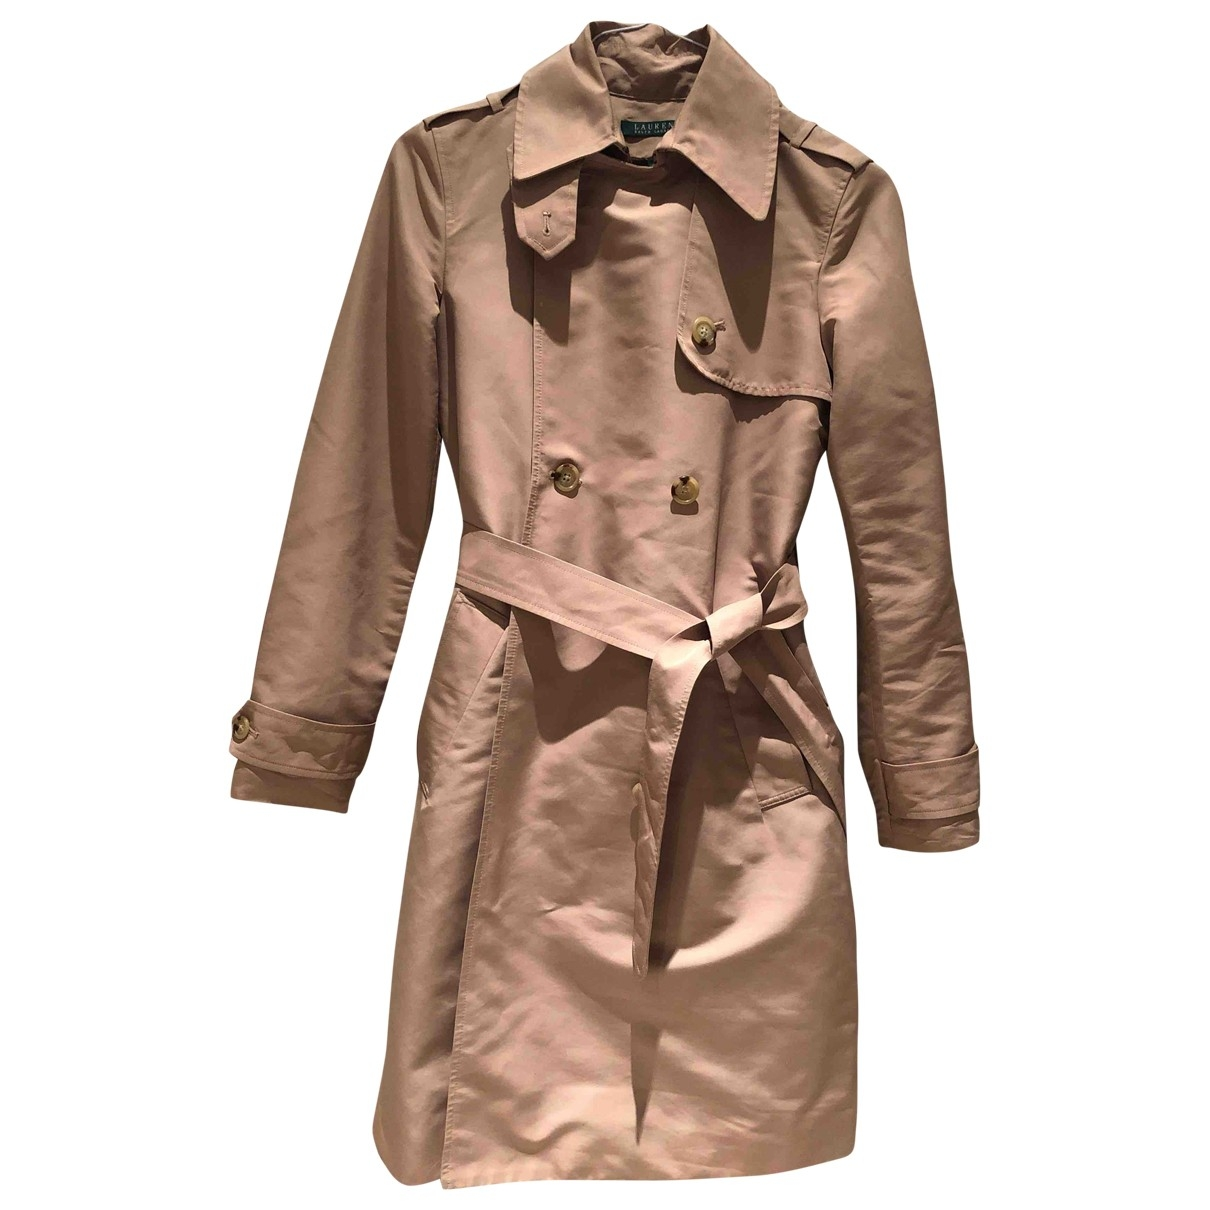 Lauren Ralph Lauren \N Camel coat for Women S International